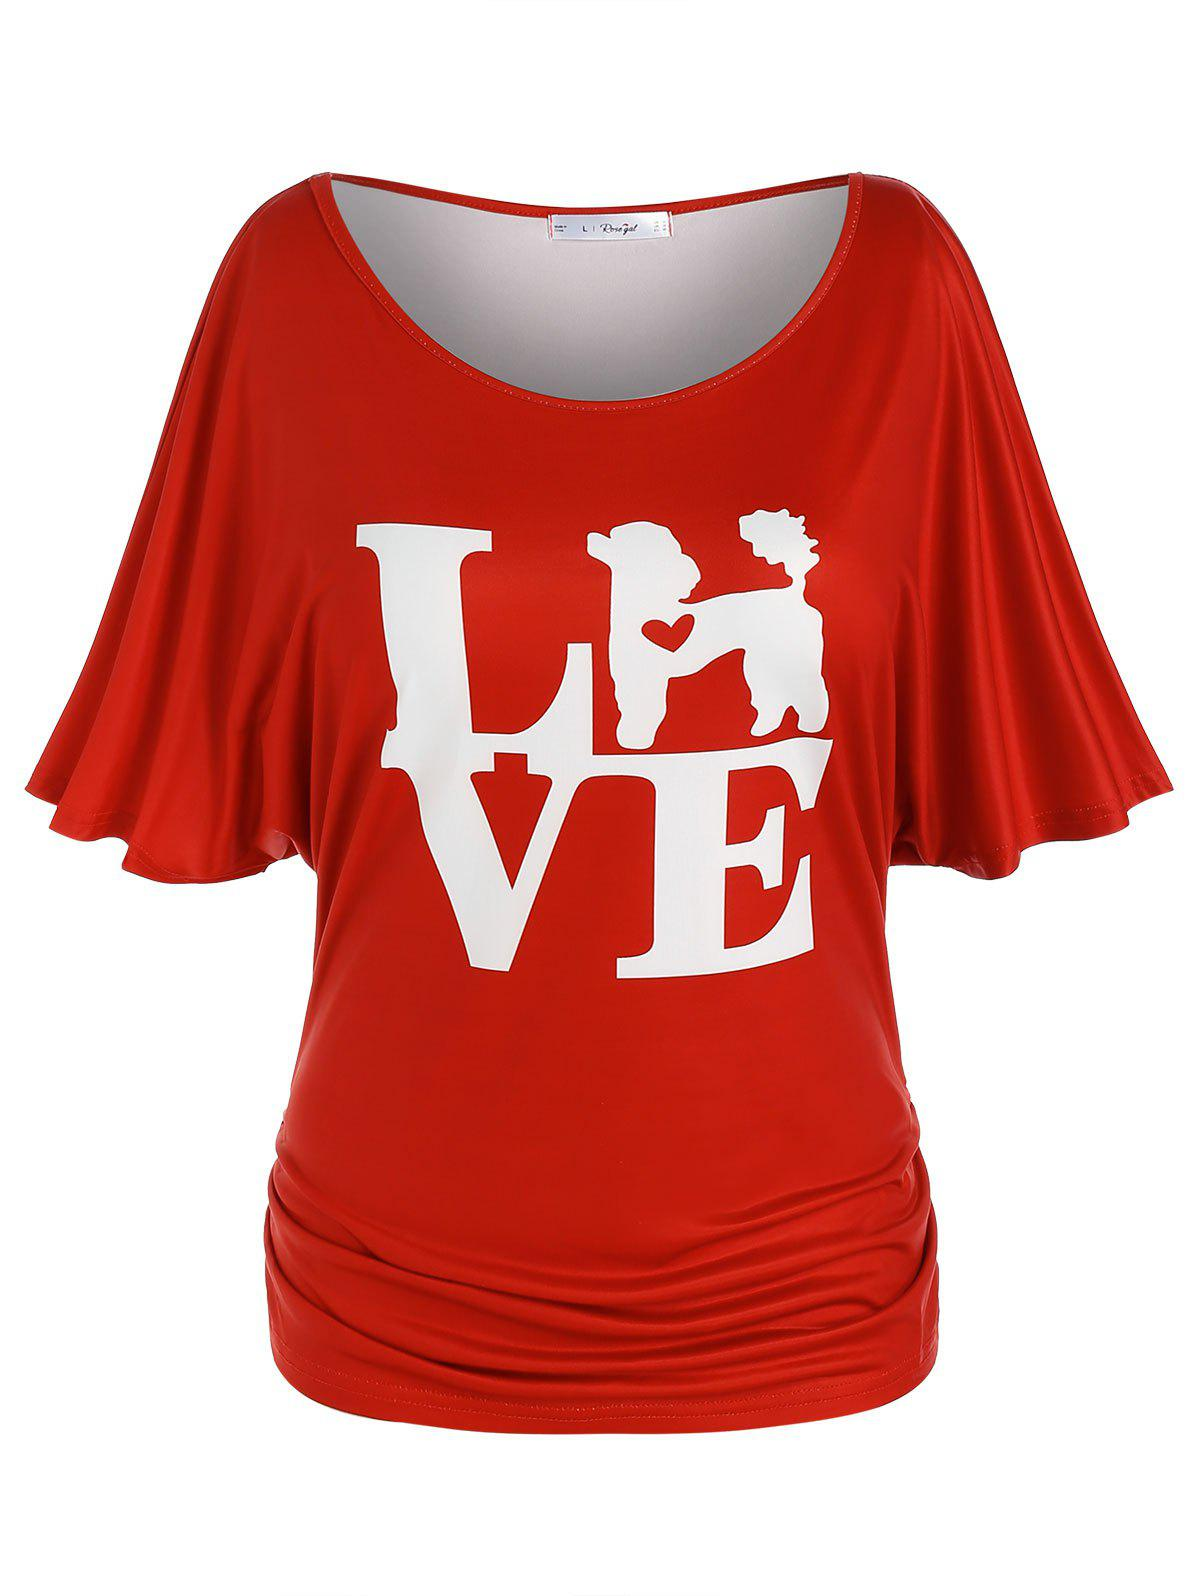 Plus Size Batwing Sleeve Ruched LOVE Graphic Tee - RED 5X